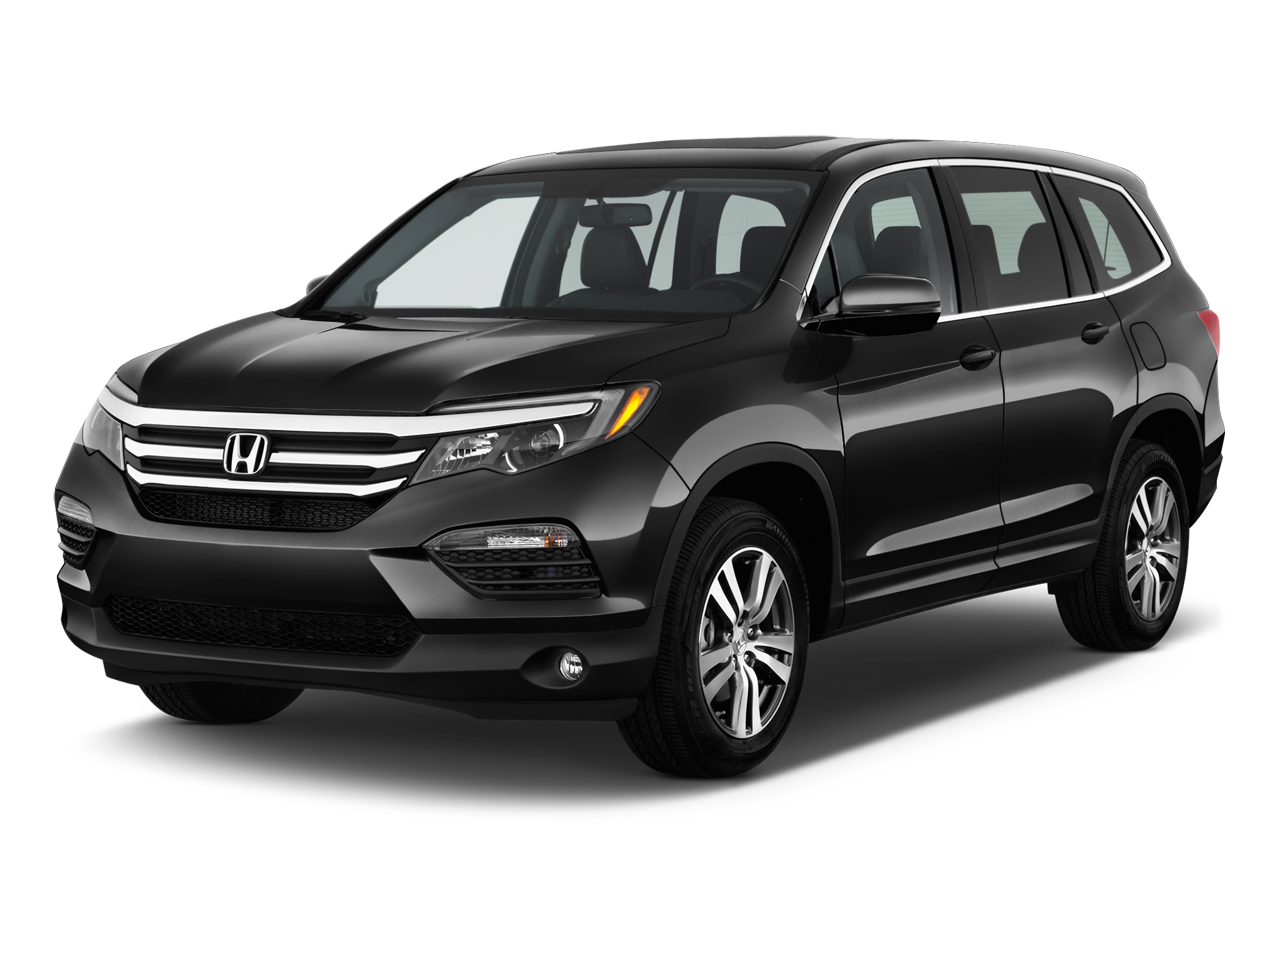 New 2016 honda pilot ex l near butler pa honda north for Black honda pilot